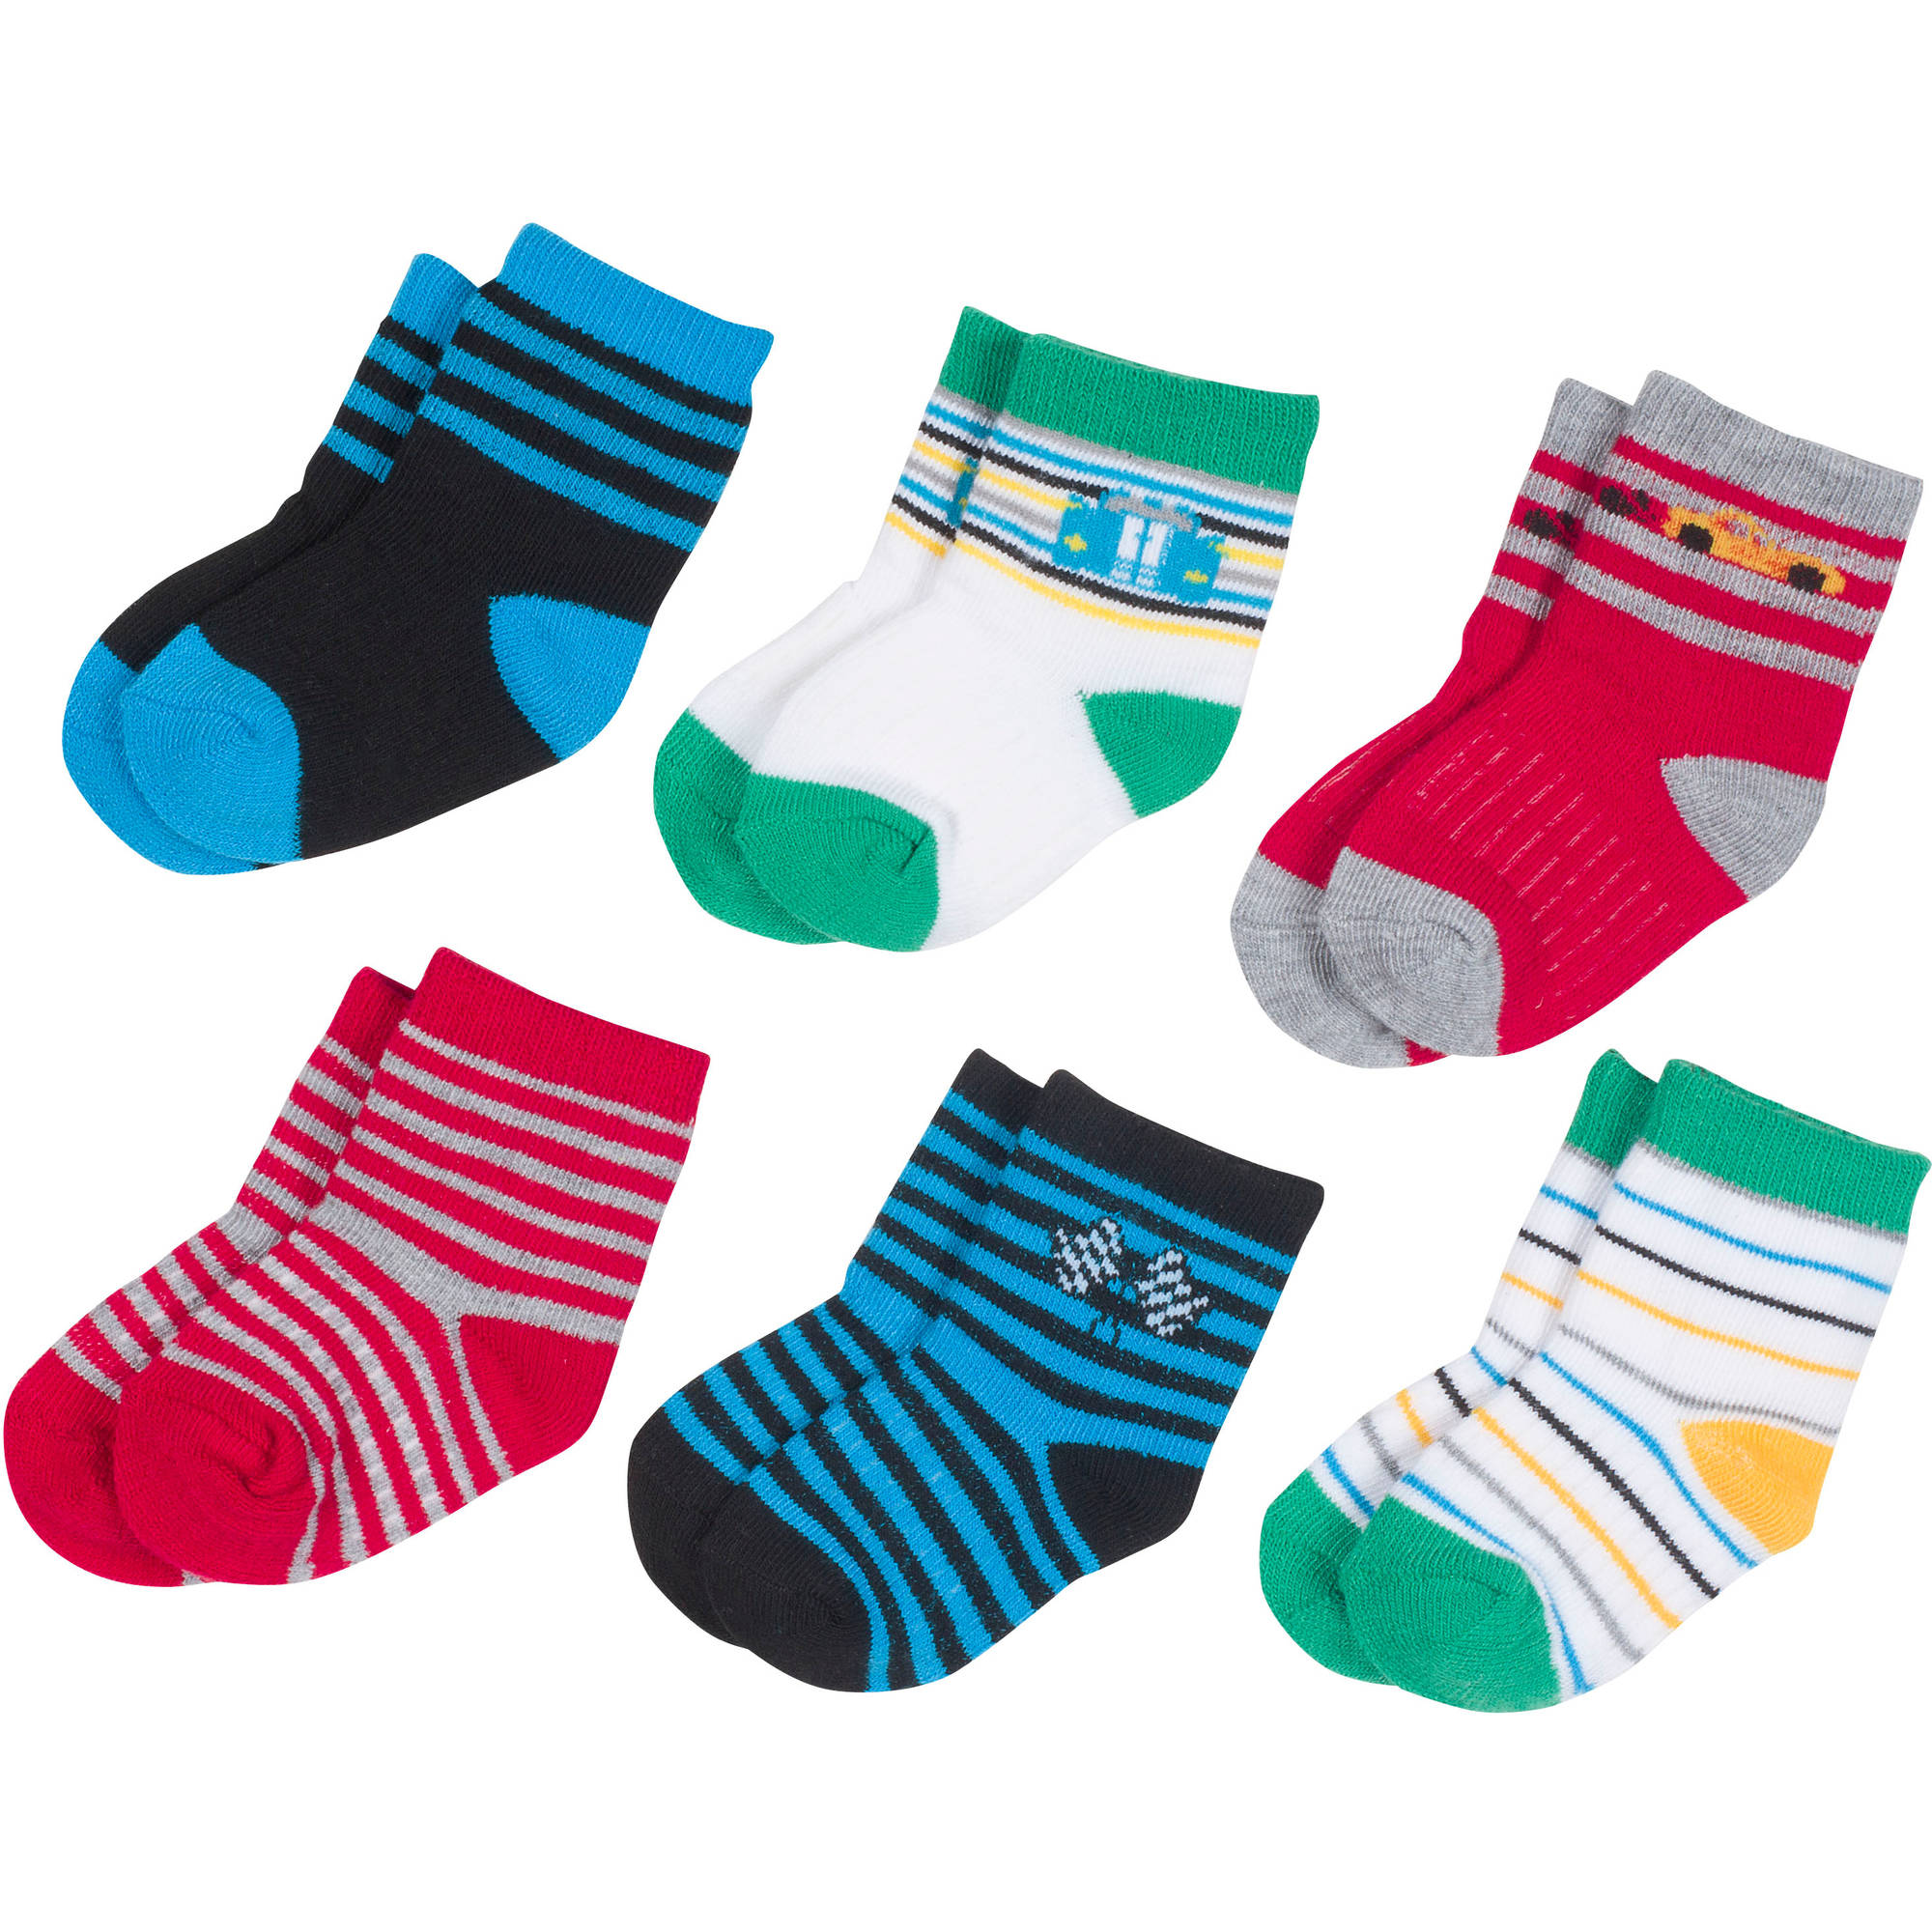 Growing Socks by Peds, Boy Infant, Racing Stripes, 6 Pairs